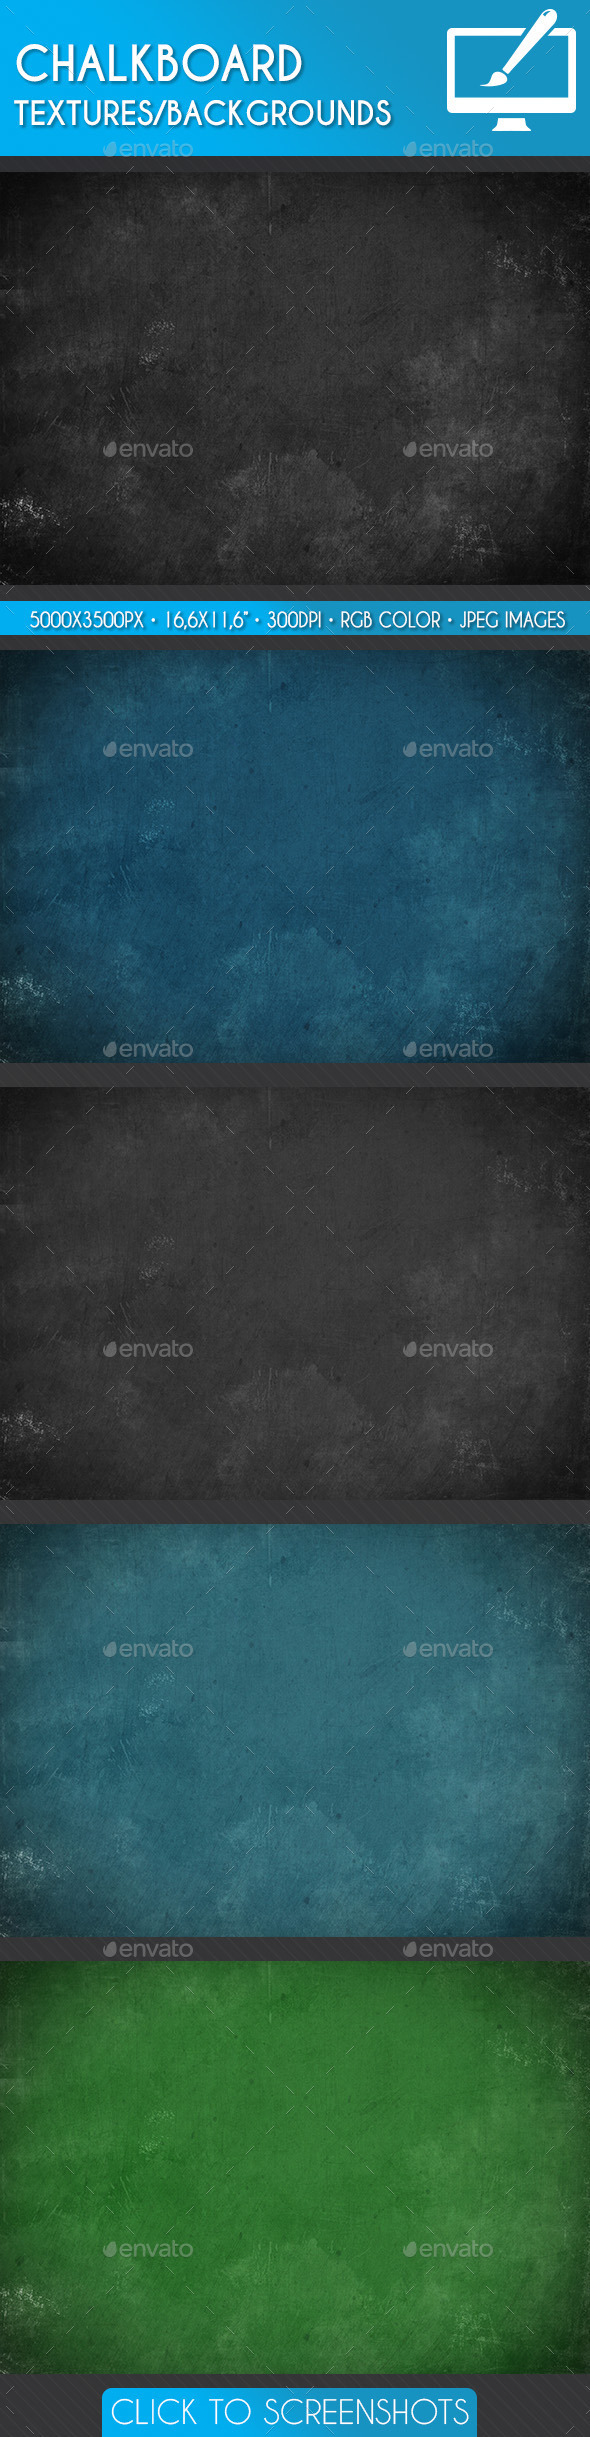 GraphicRiver Chalkboard Textures Backgrounds 10873675